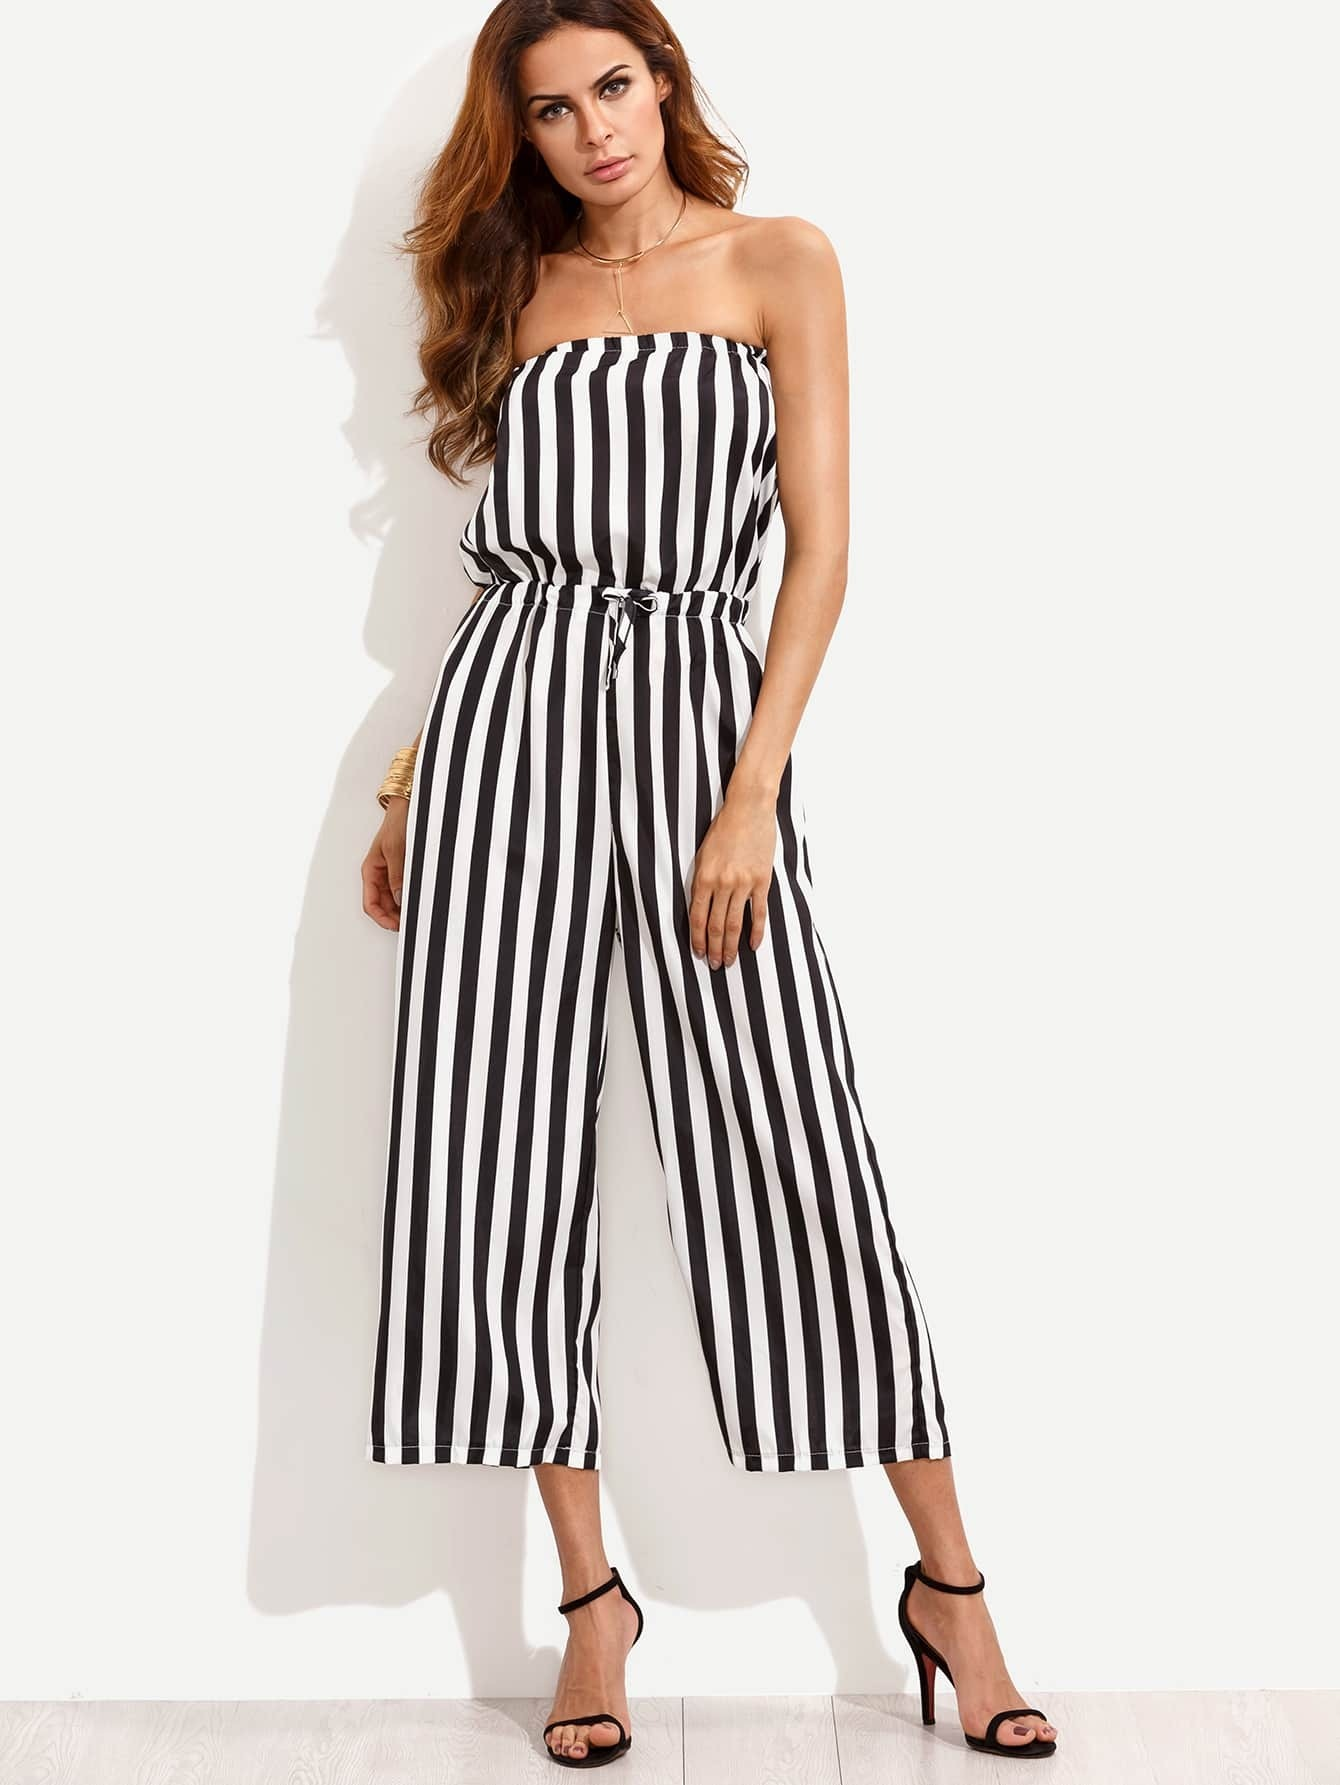 fa4af21a47e0a Black White Vertical Striped Drawstring Bandeau Jumpsuit EmmaCloth ...